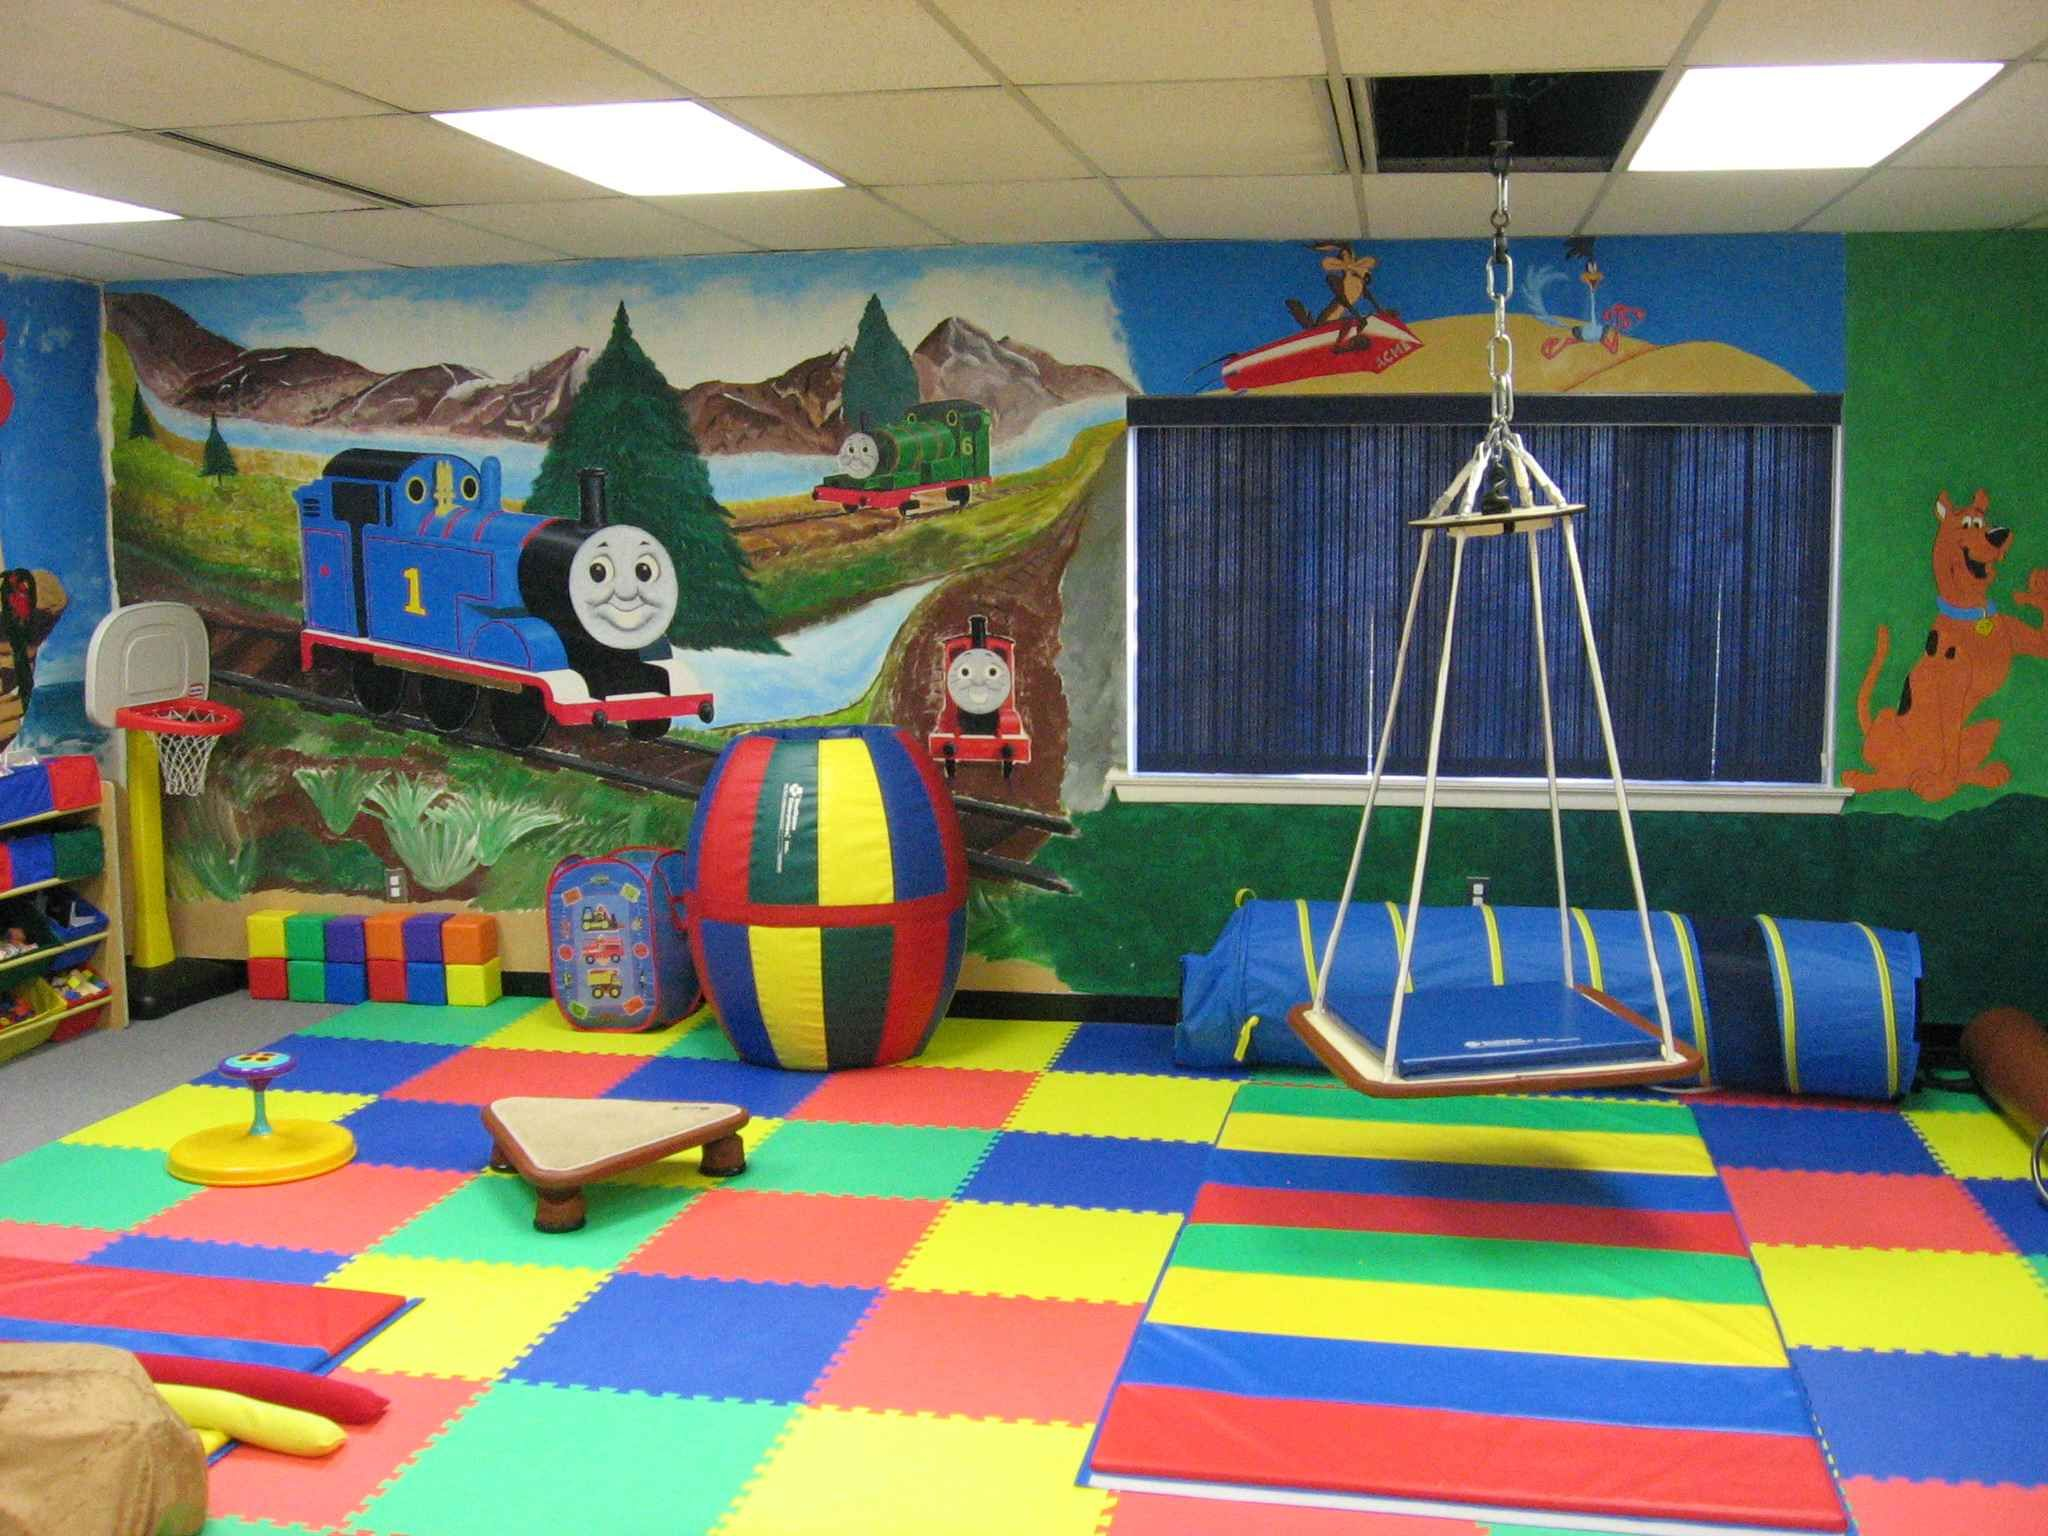 Alfombra Infantil Circuito Occupational Therapy Rooms On Pinterest Occupational